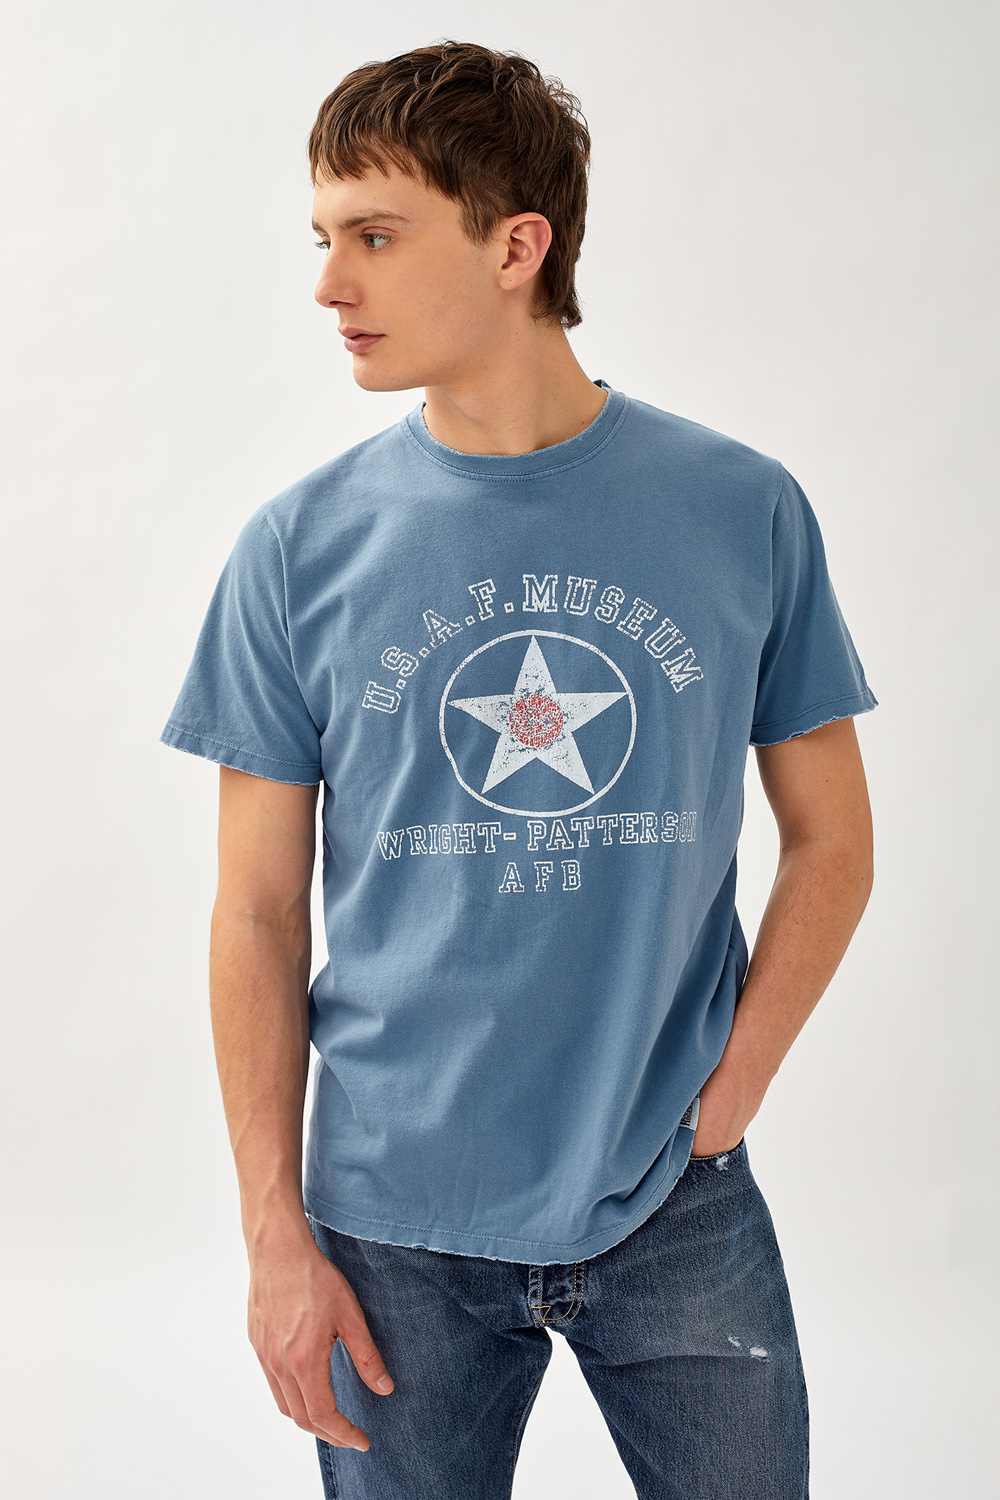 ROY ROGERS: T-SHIRT MUSEUM IN JERSEY DESTROYED